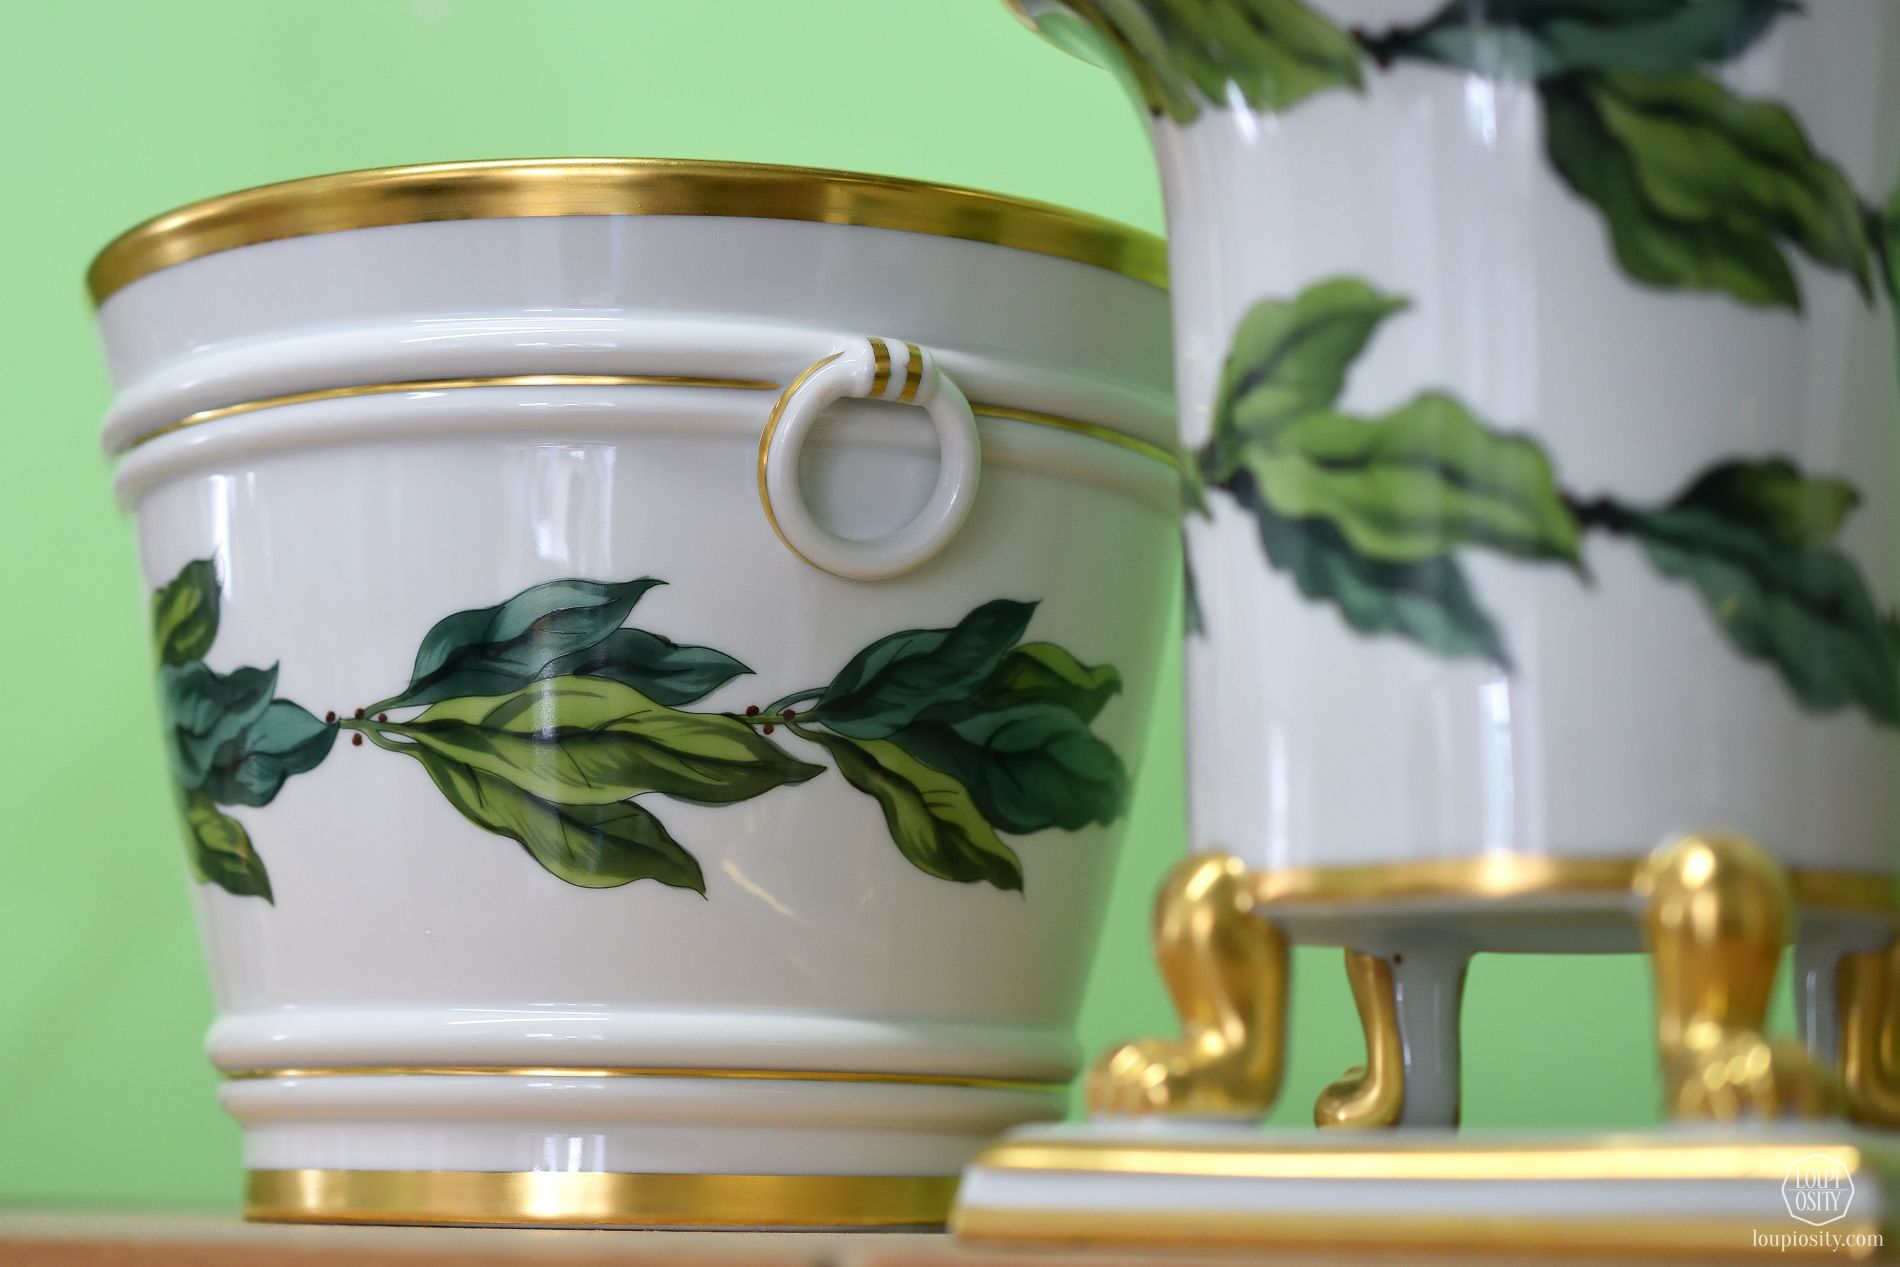 Visiting the Augarten Porcelain Manufacture